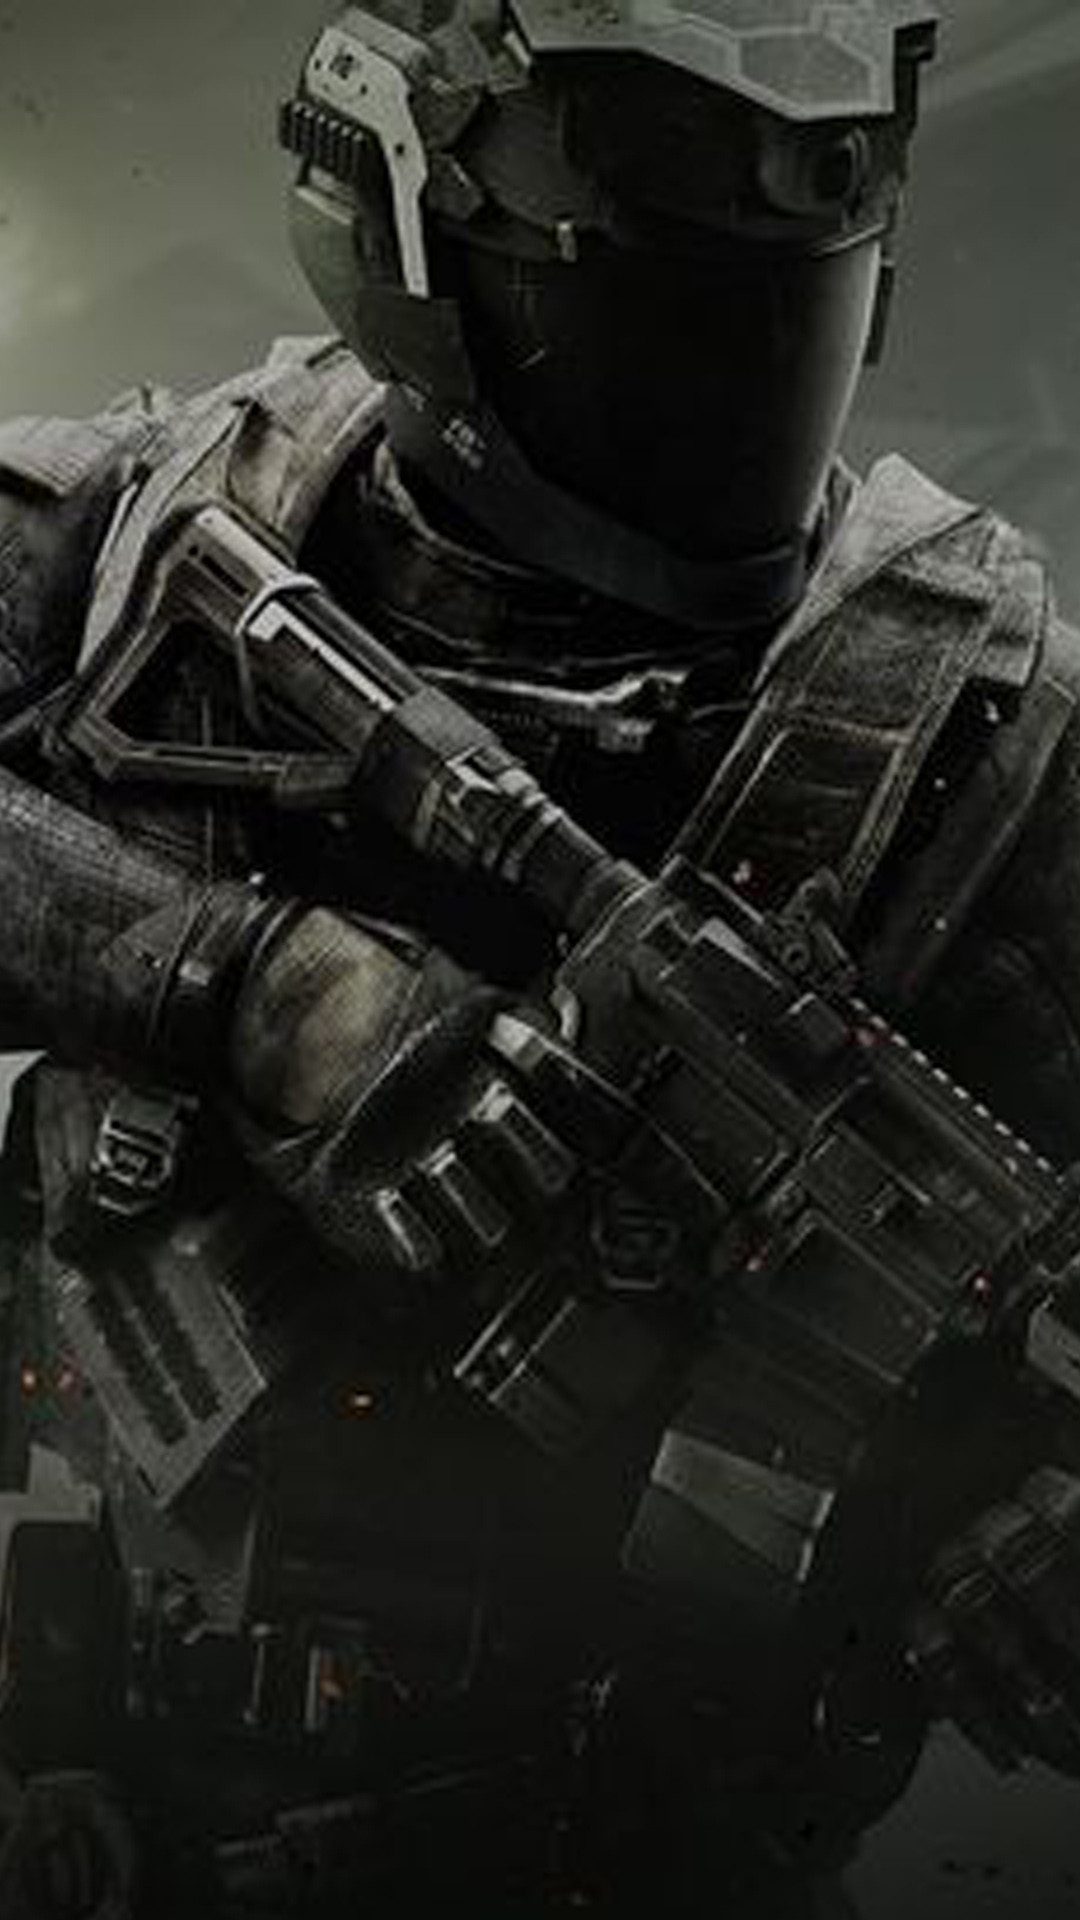 72 Call of Duty iPhone 1080x1920